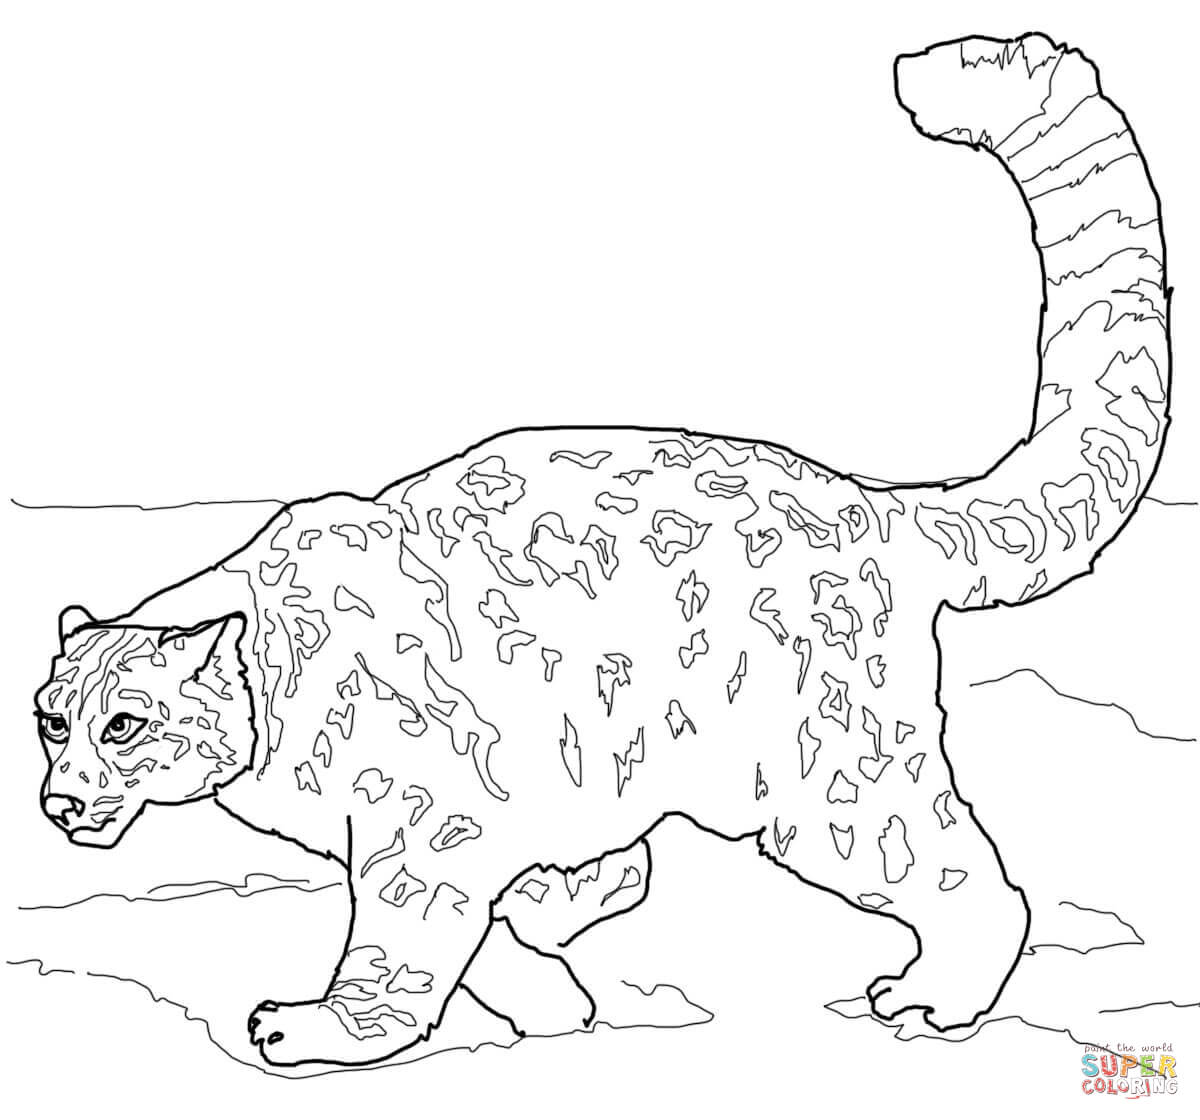 Drawn snow leopard tree drawing Snow Leopard pages Coloring Leopards